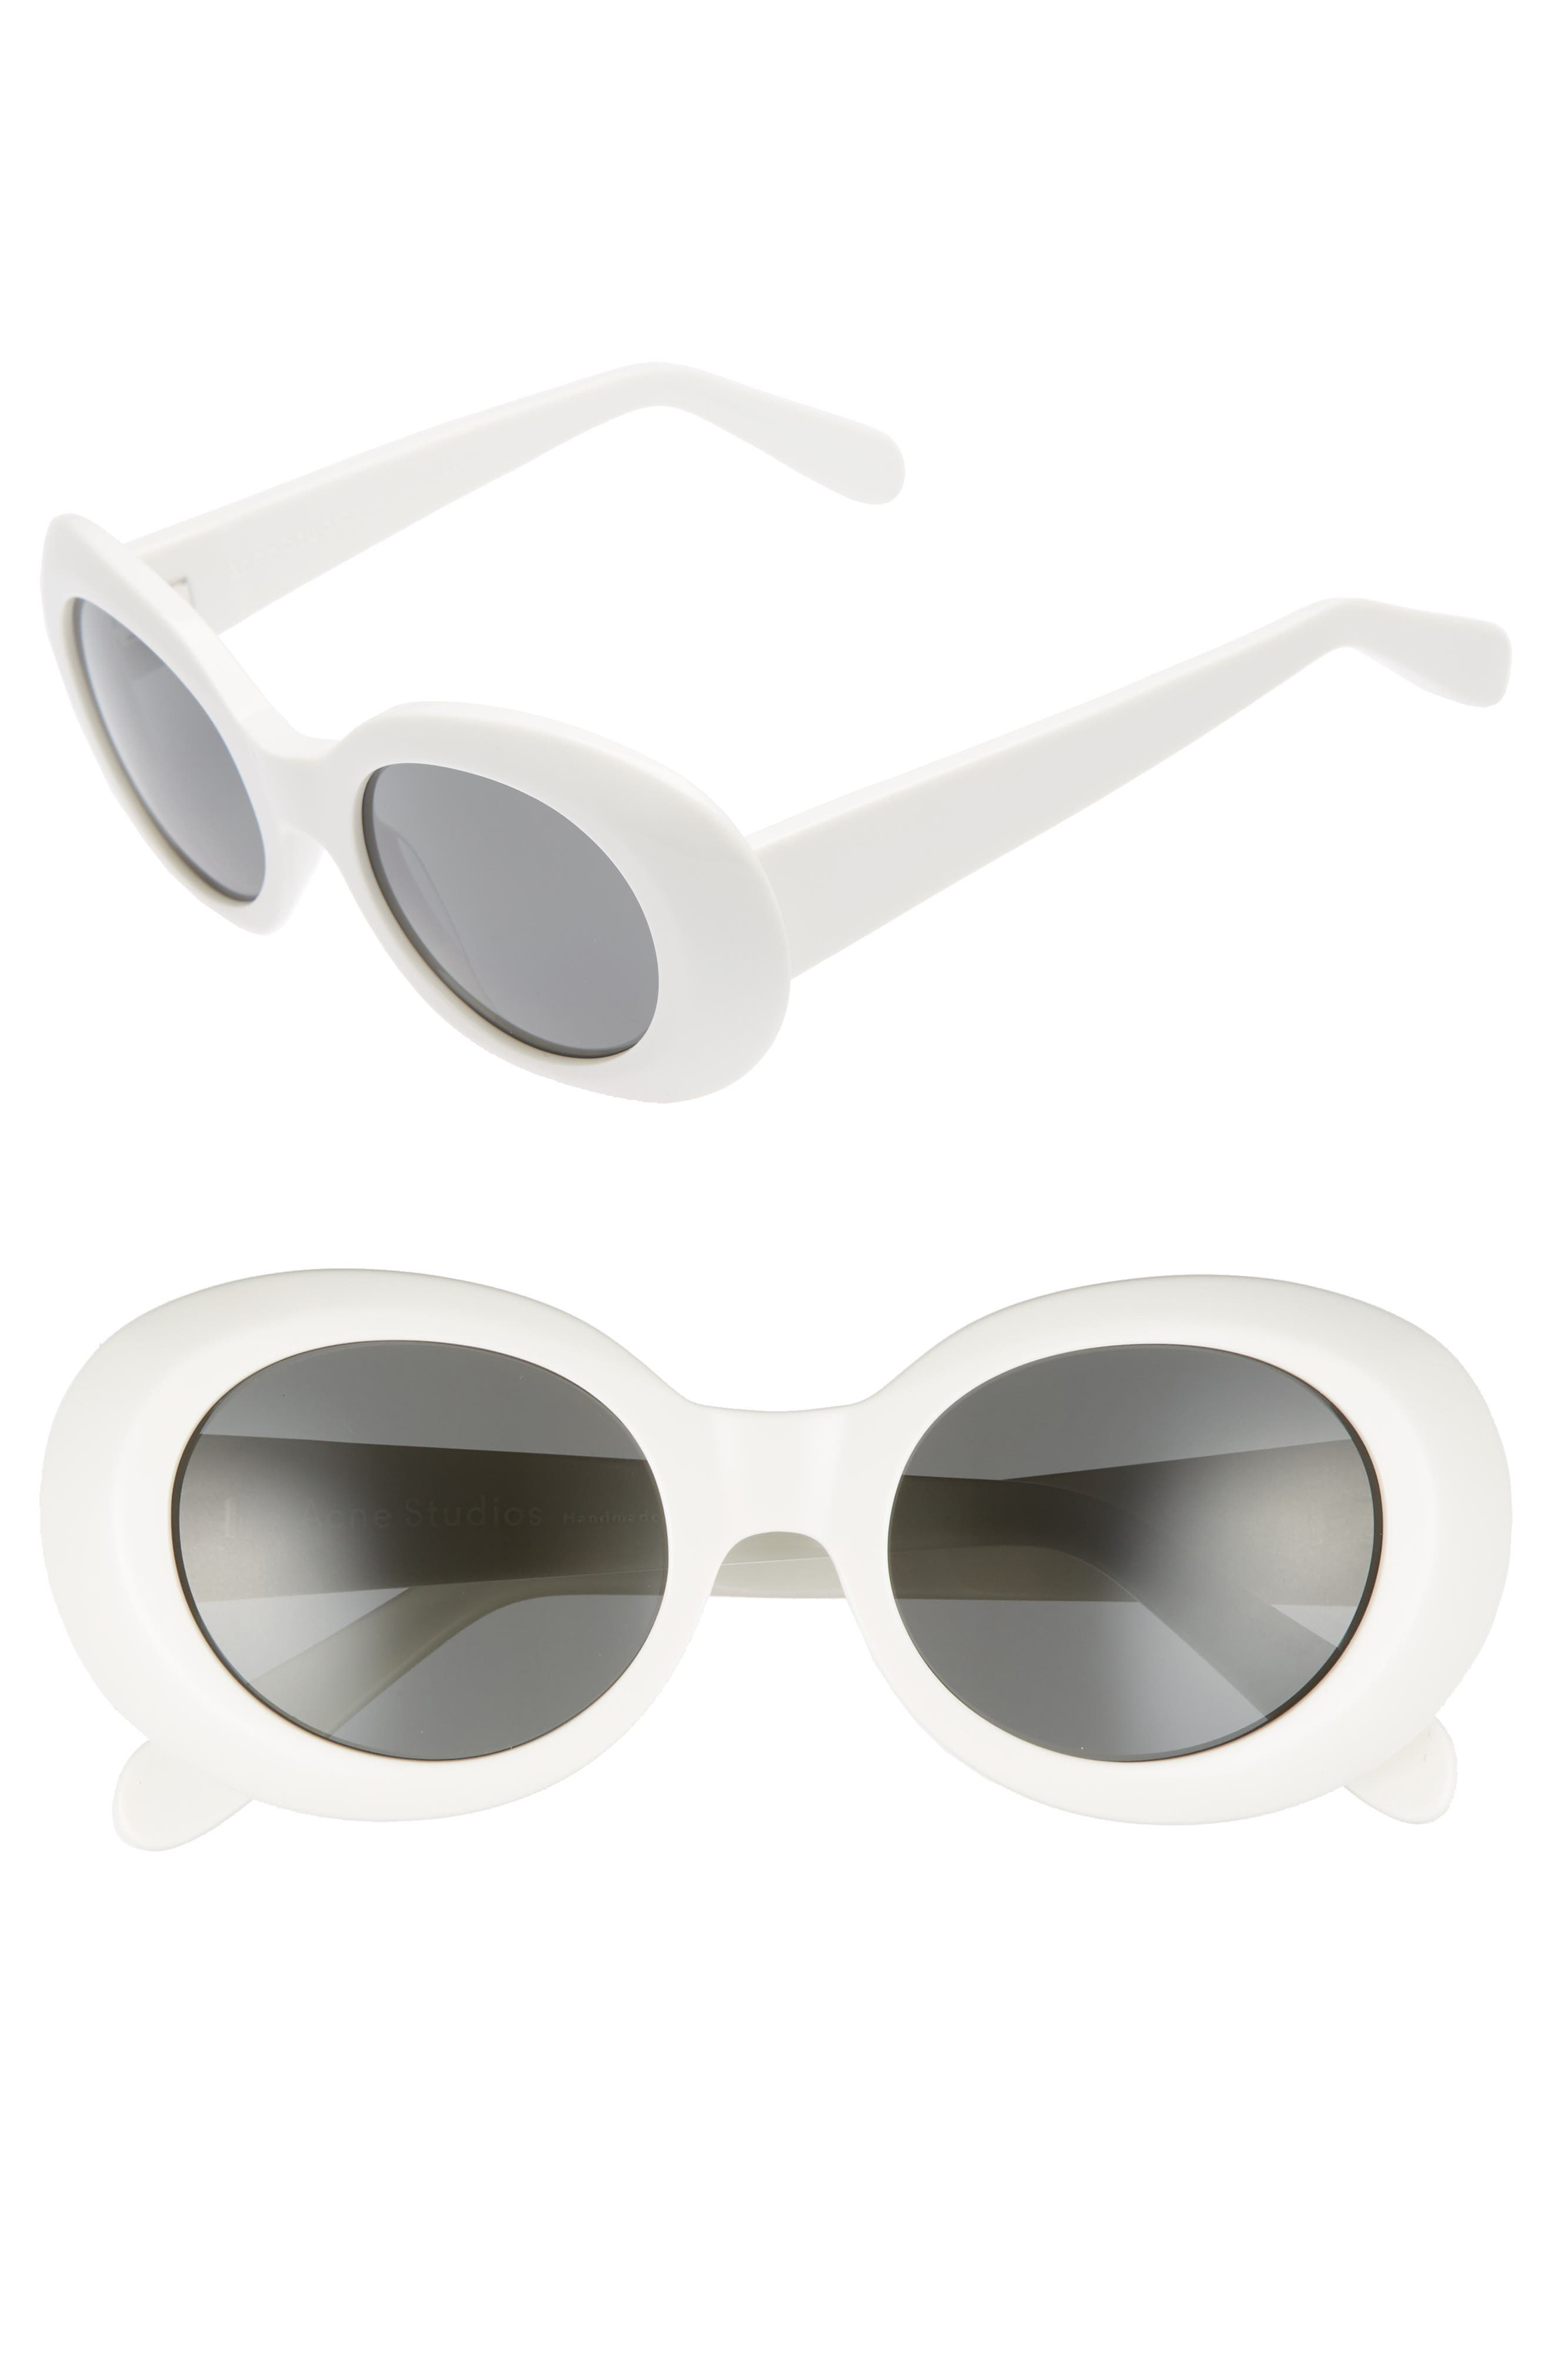 Mustang 48mm Sunglasses,                         Main,                         color, Off White/ Black